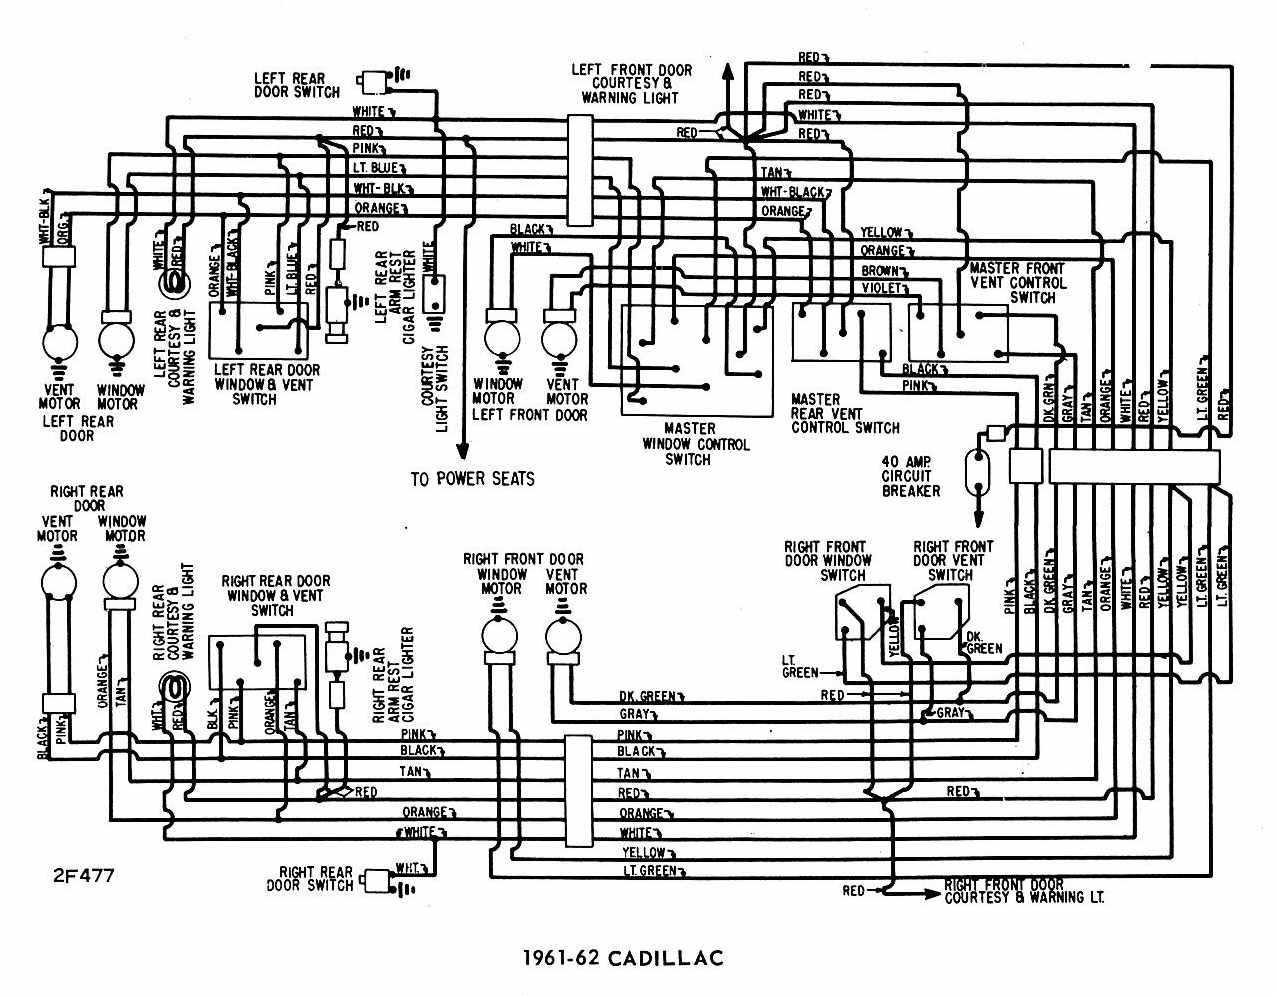 1999 cadillac sts engine wiring diagram trusted wiring diagram u2022 rh soulmatestyle co